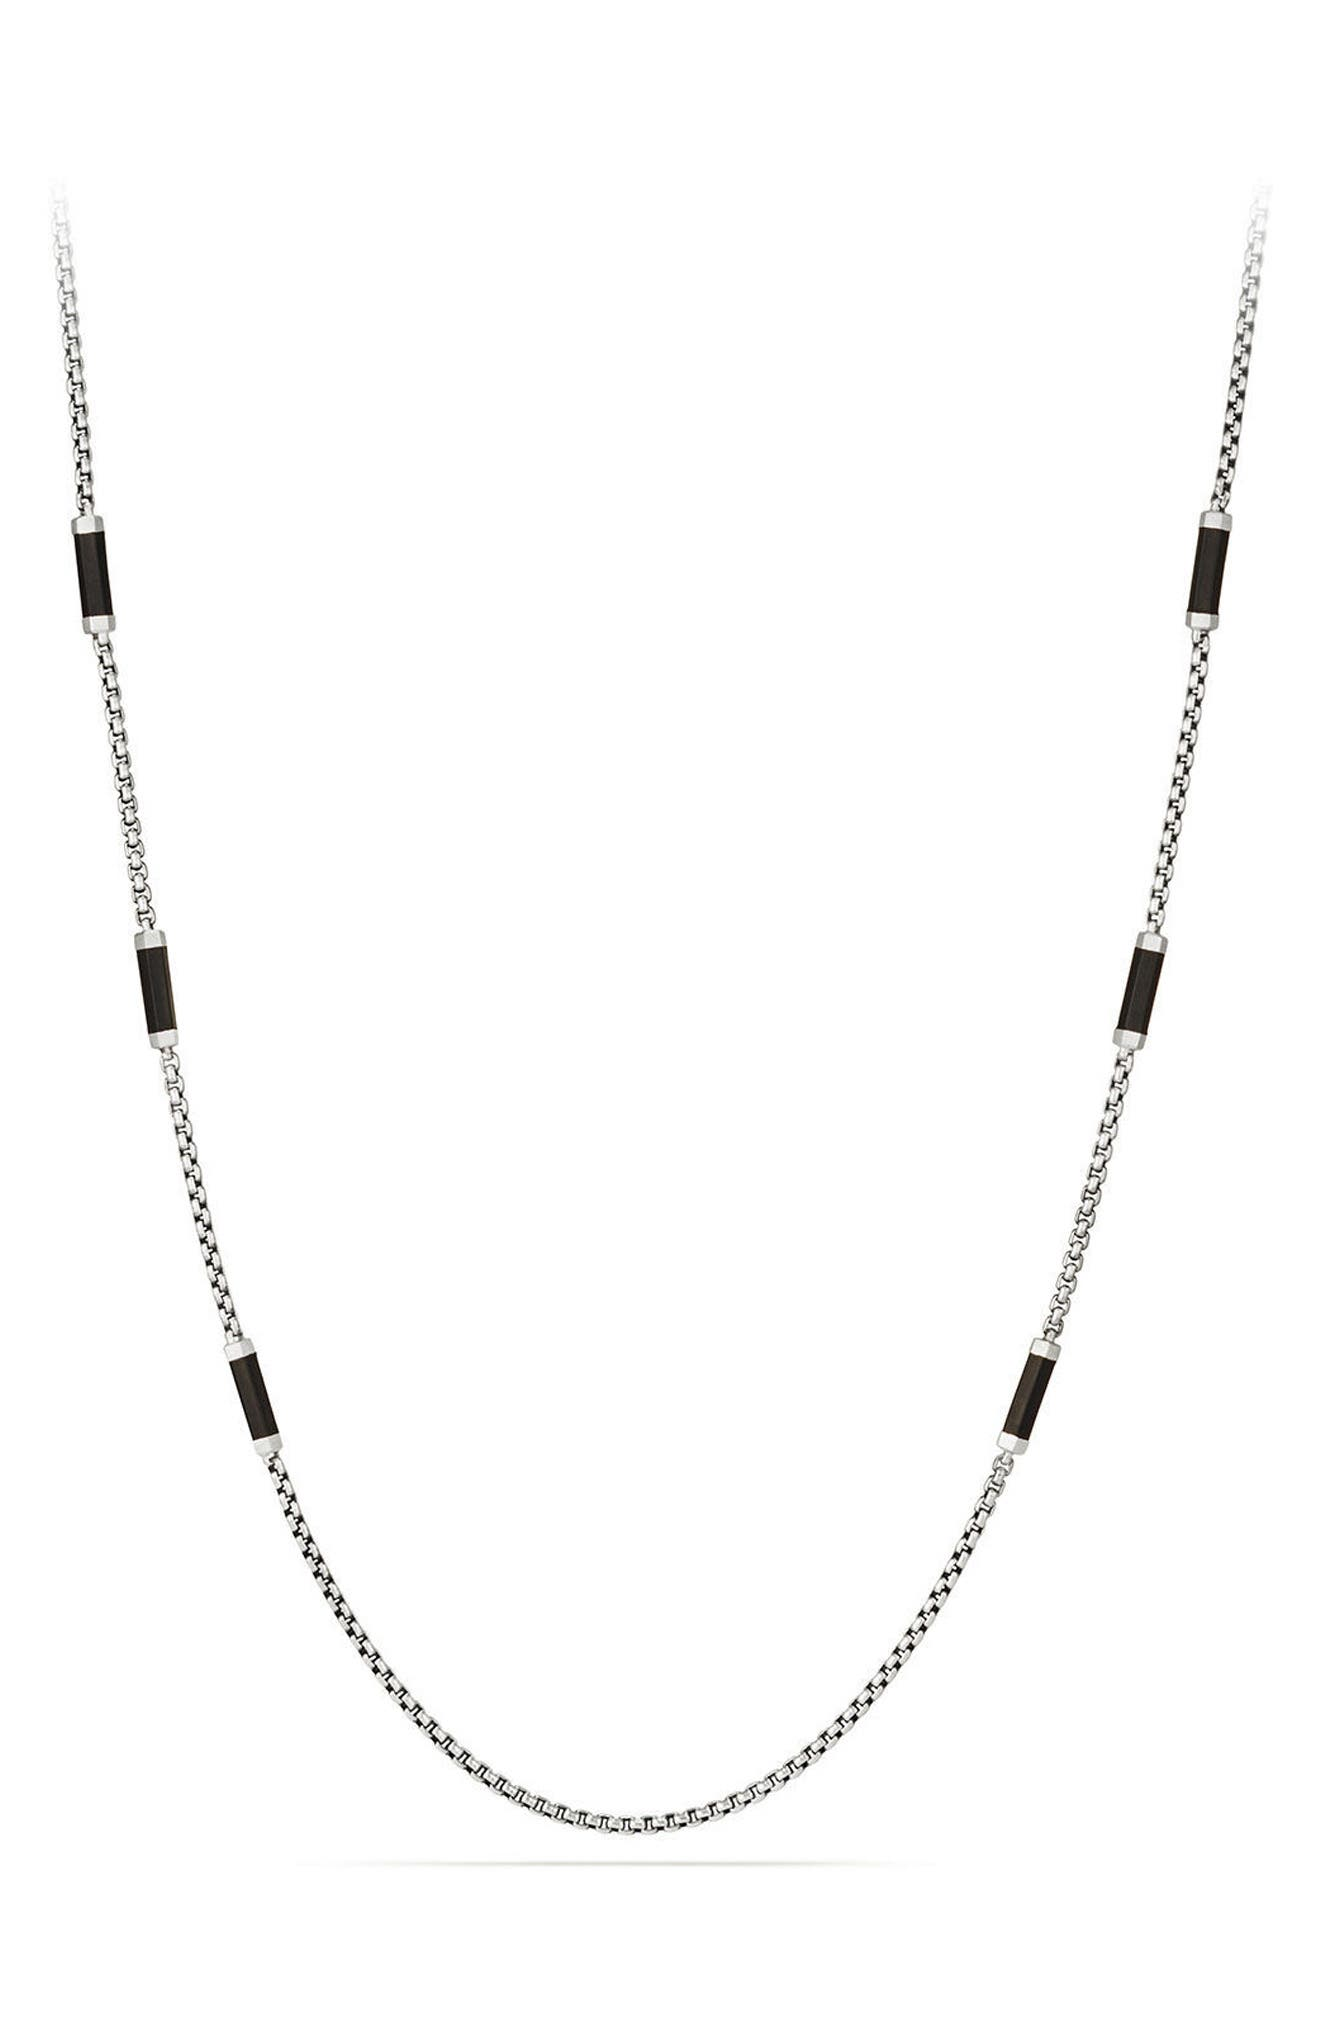 DAVID YURMAN Hex Station Chain Necklace with Rubber